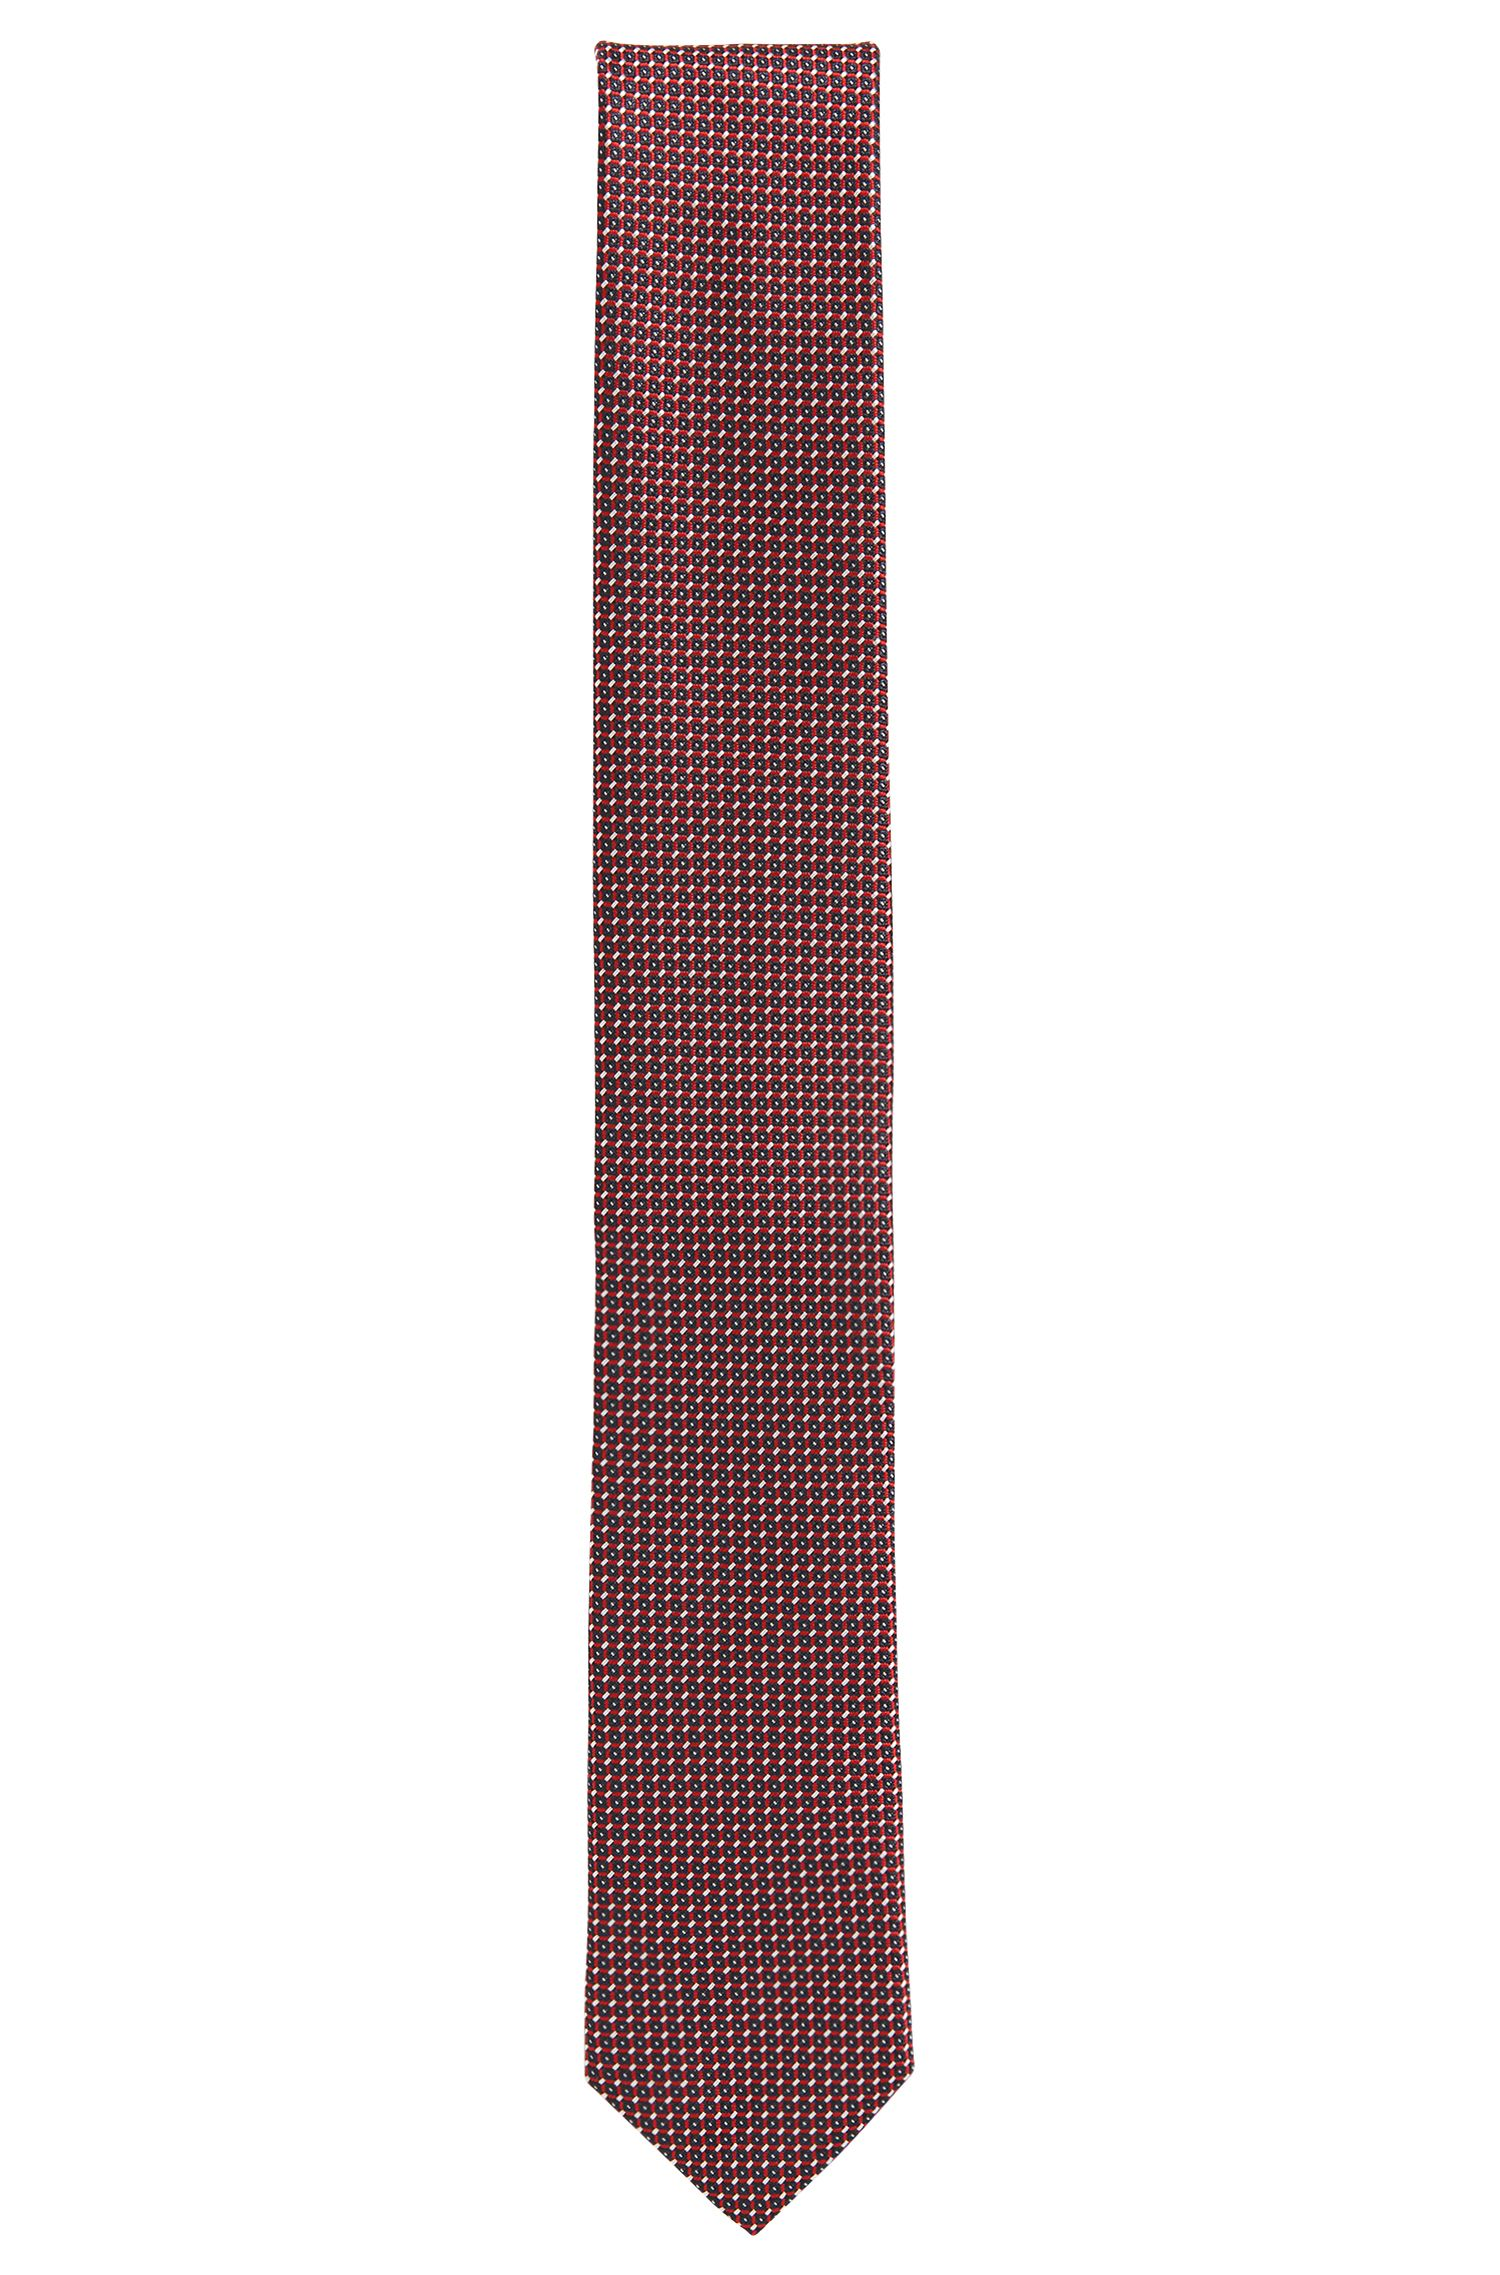 Silk-jacquard tie made in Italy